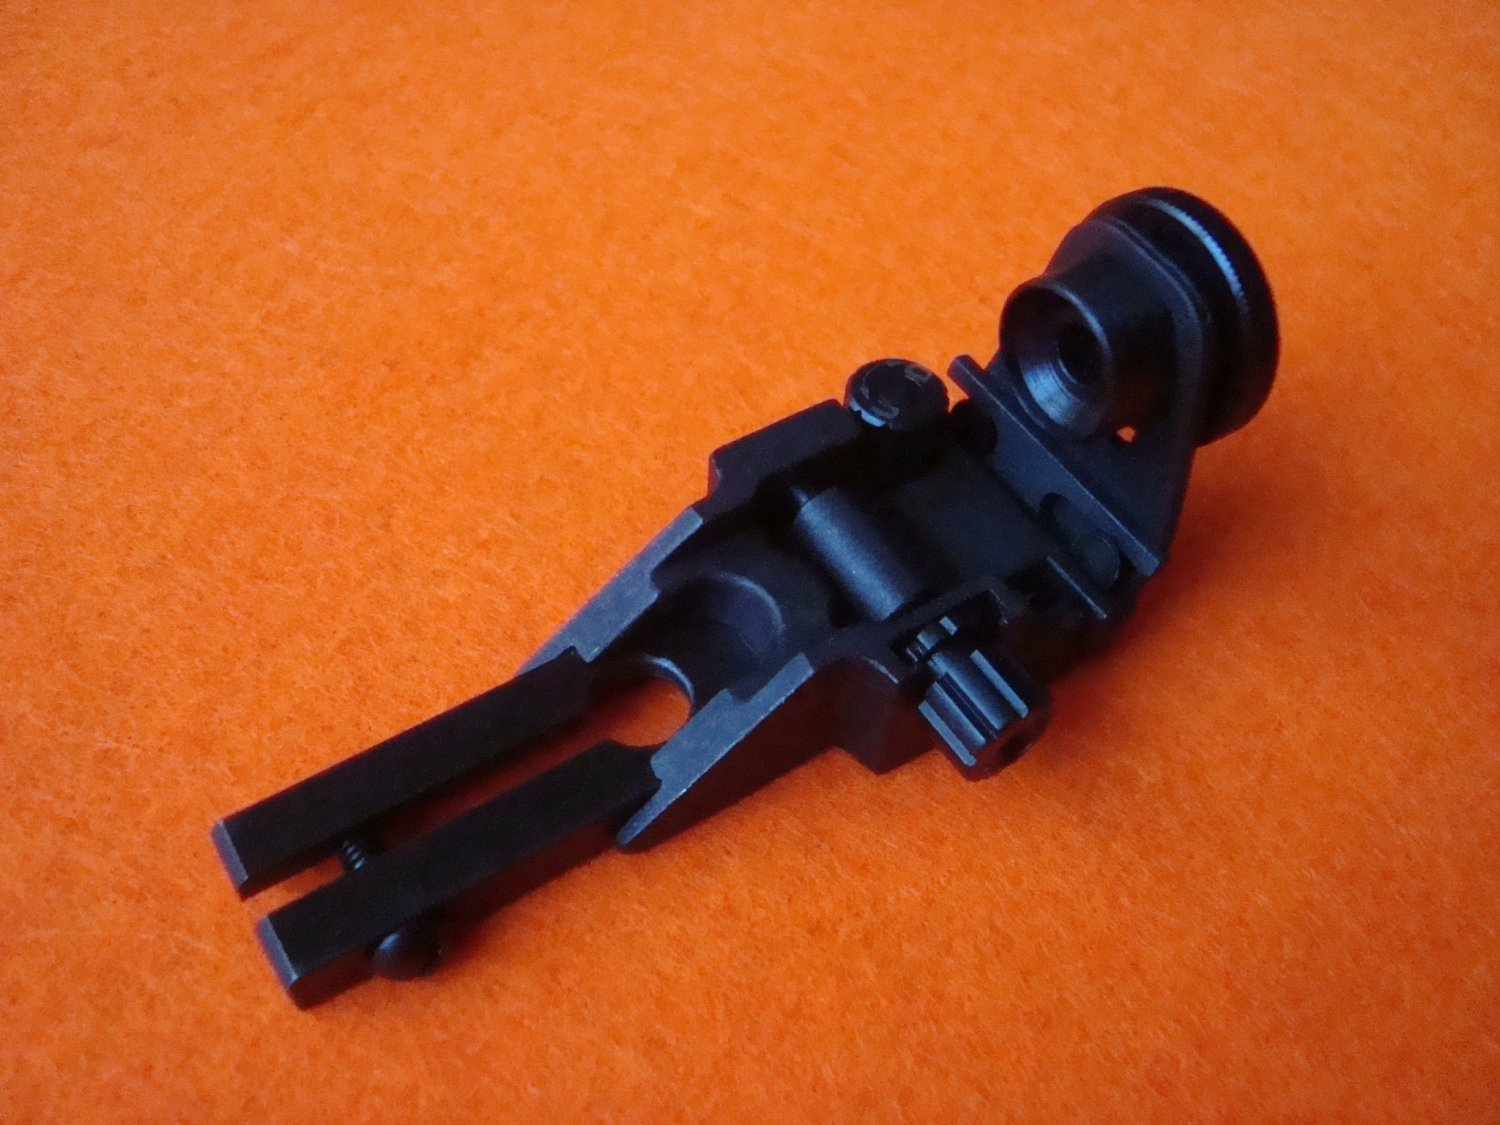 Sight mp-61, mp-60 with dioptric design upgrade, maximum customizable, modernized part made to order